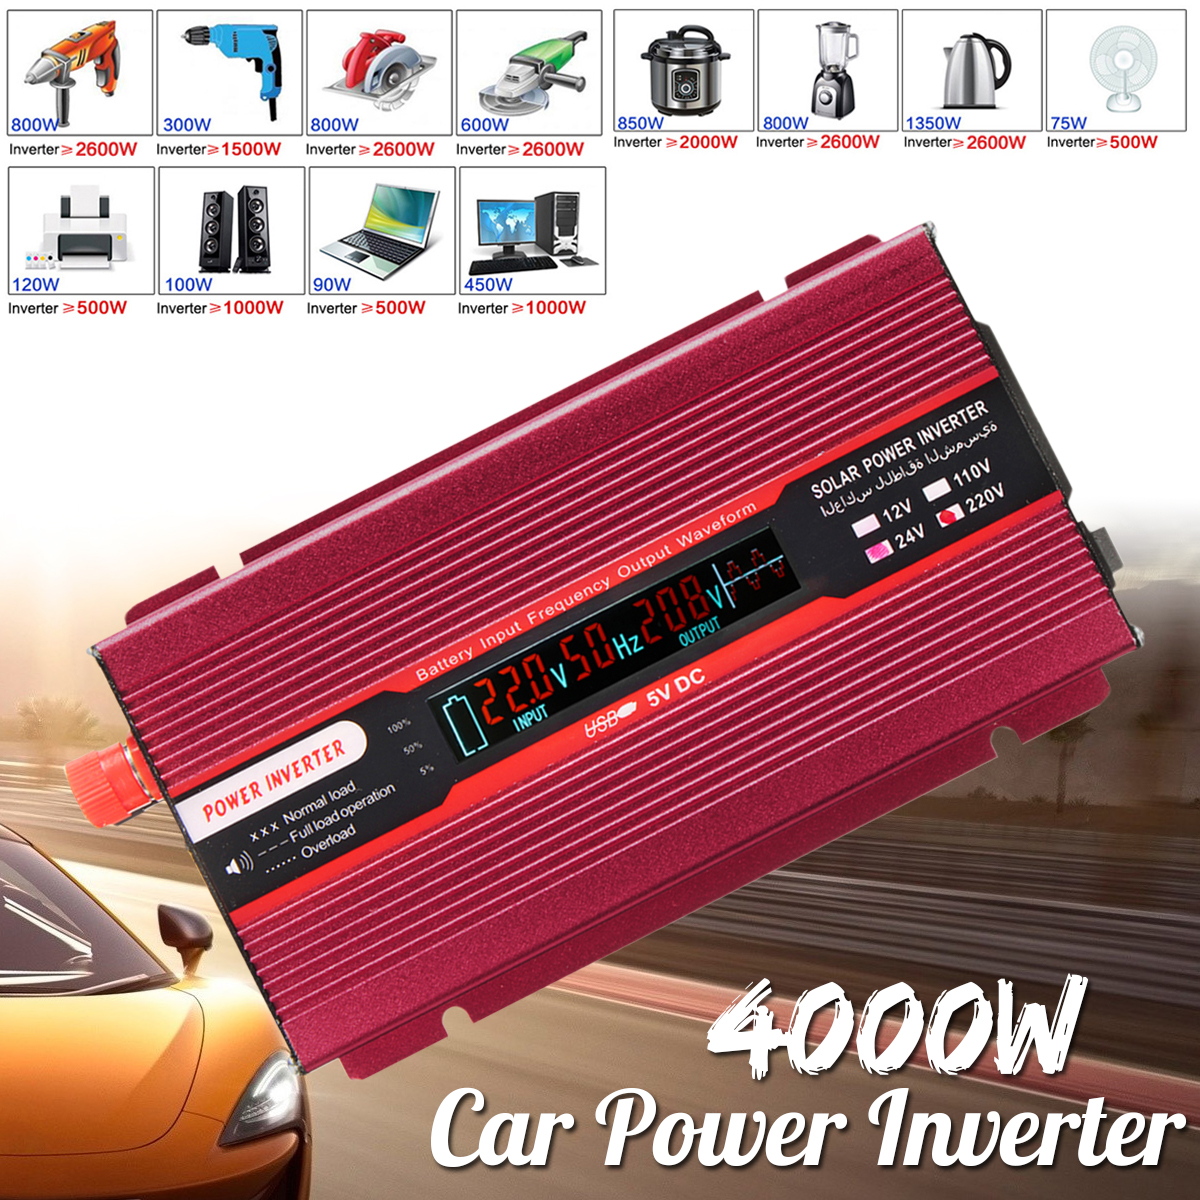 Voltage Transformer PEAK 4000W 12/24V To AC 220/110V Car Power Inverter USB Modified Sine Wave Converter Multiple Protect 12 24v to ac 220 110v car power inverter converter peak 10000w usb modified sine wave voltage transformer universal intelligent